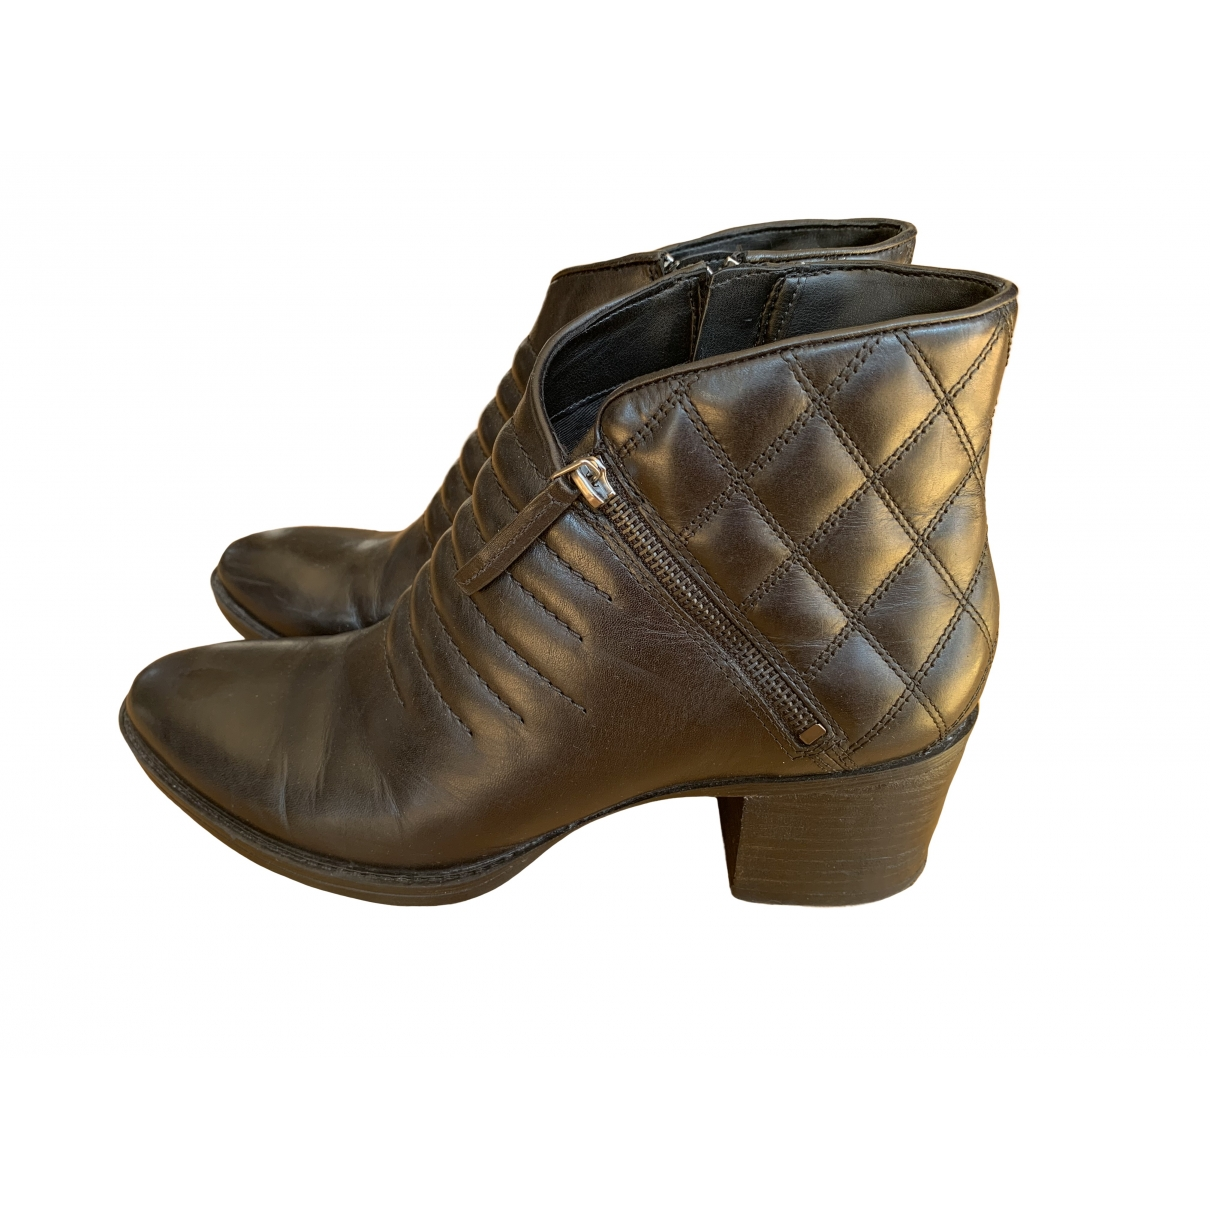 Clarks \N Black Leather Boots for Women 7 UK